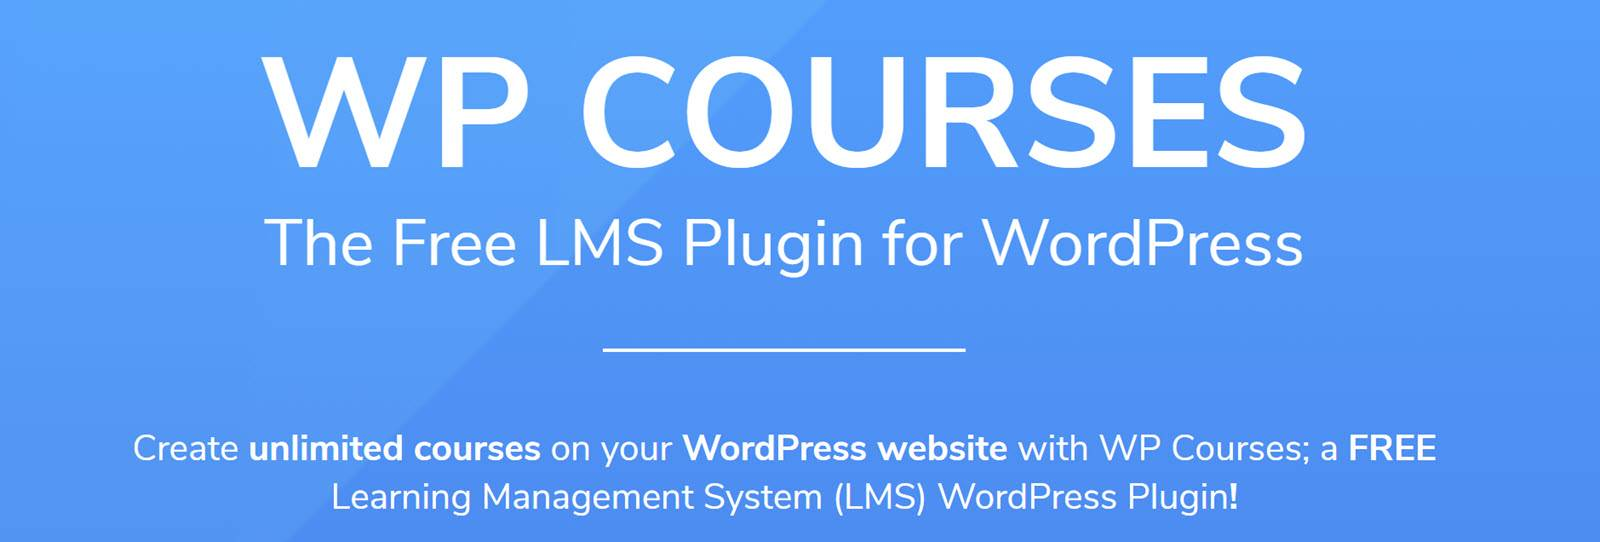 Best WordPress Plugins for Online Courses WP Cources LMS